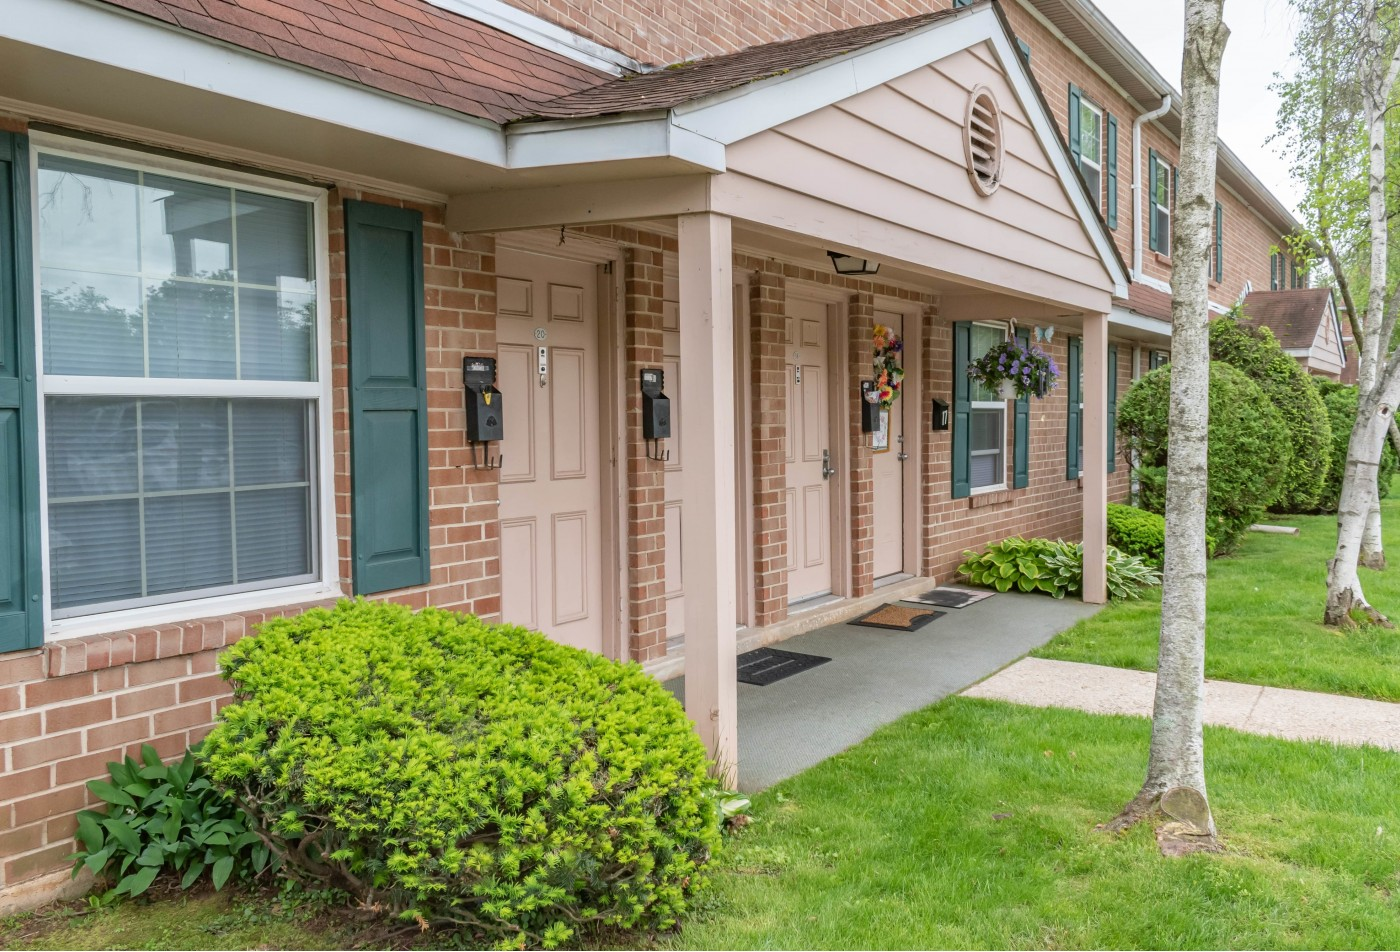 Apartments in Norristown, PA | Westover Village Apartments